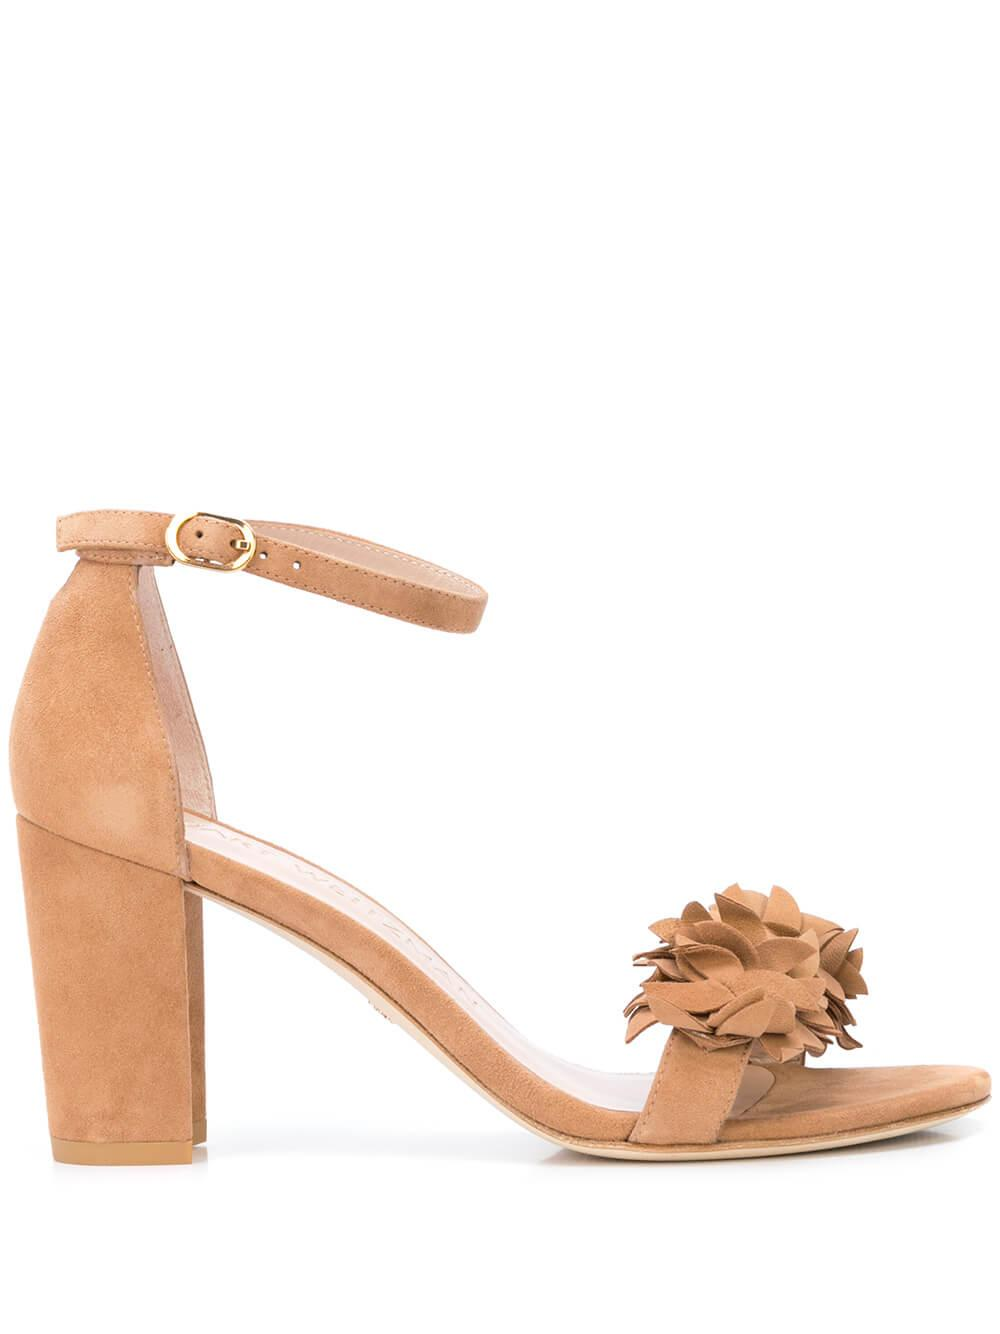 Suede 75MM Block Heel Sandal With Flower